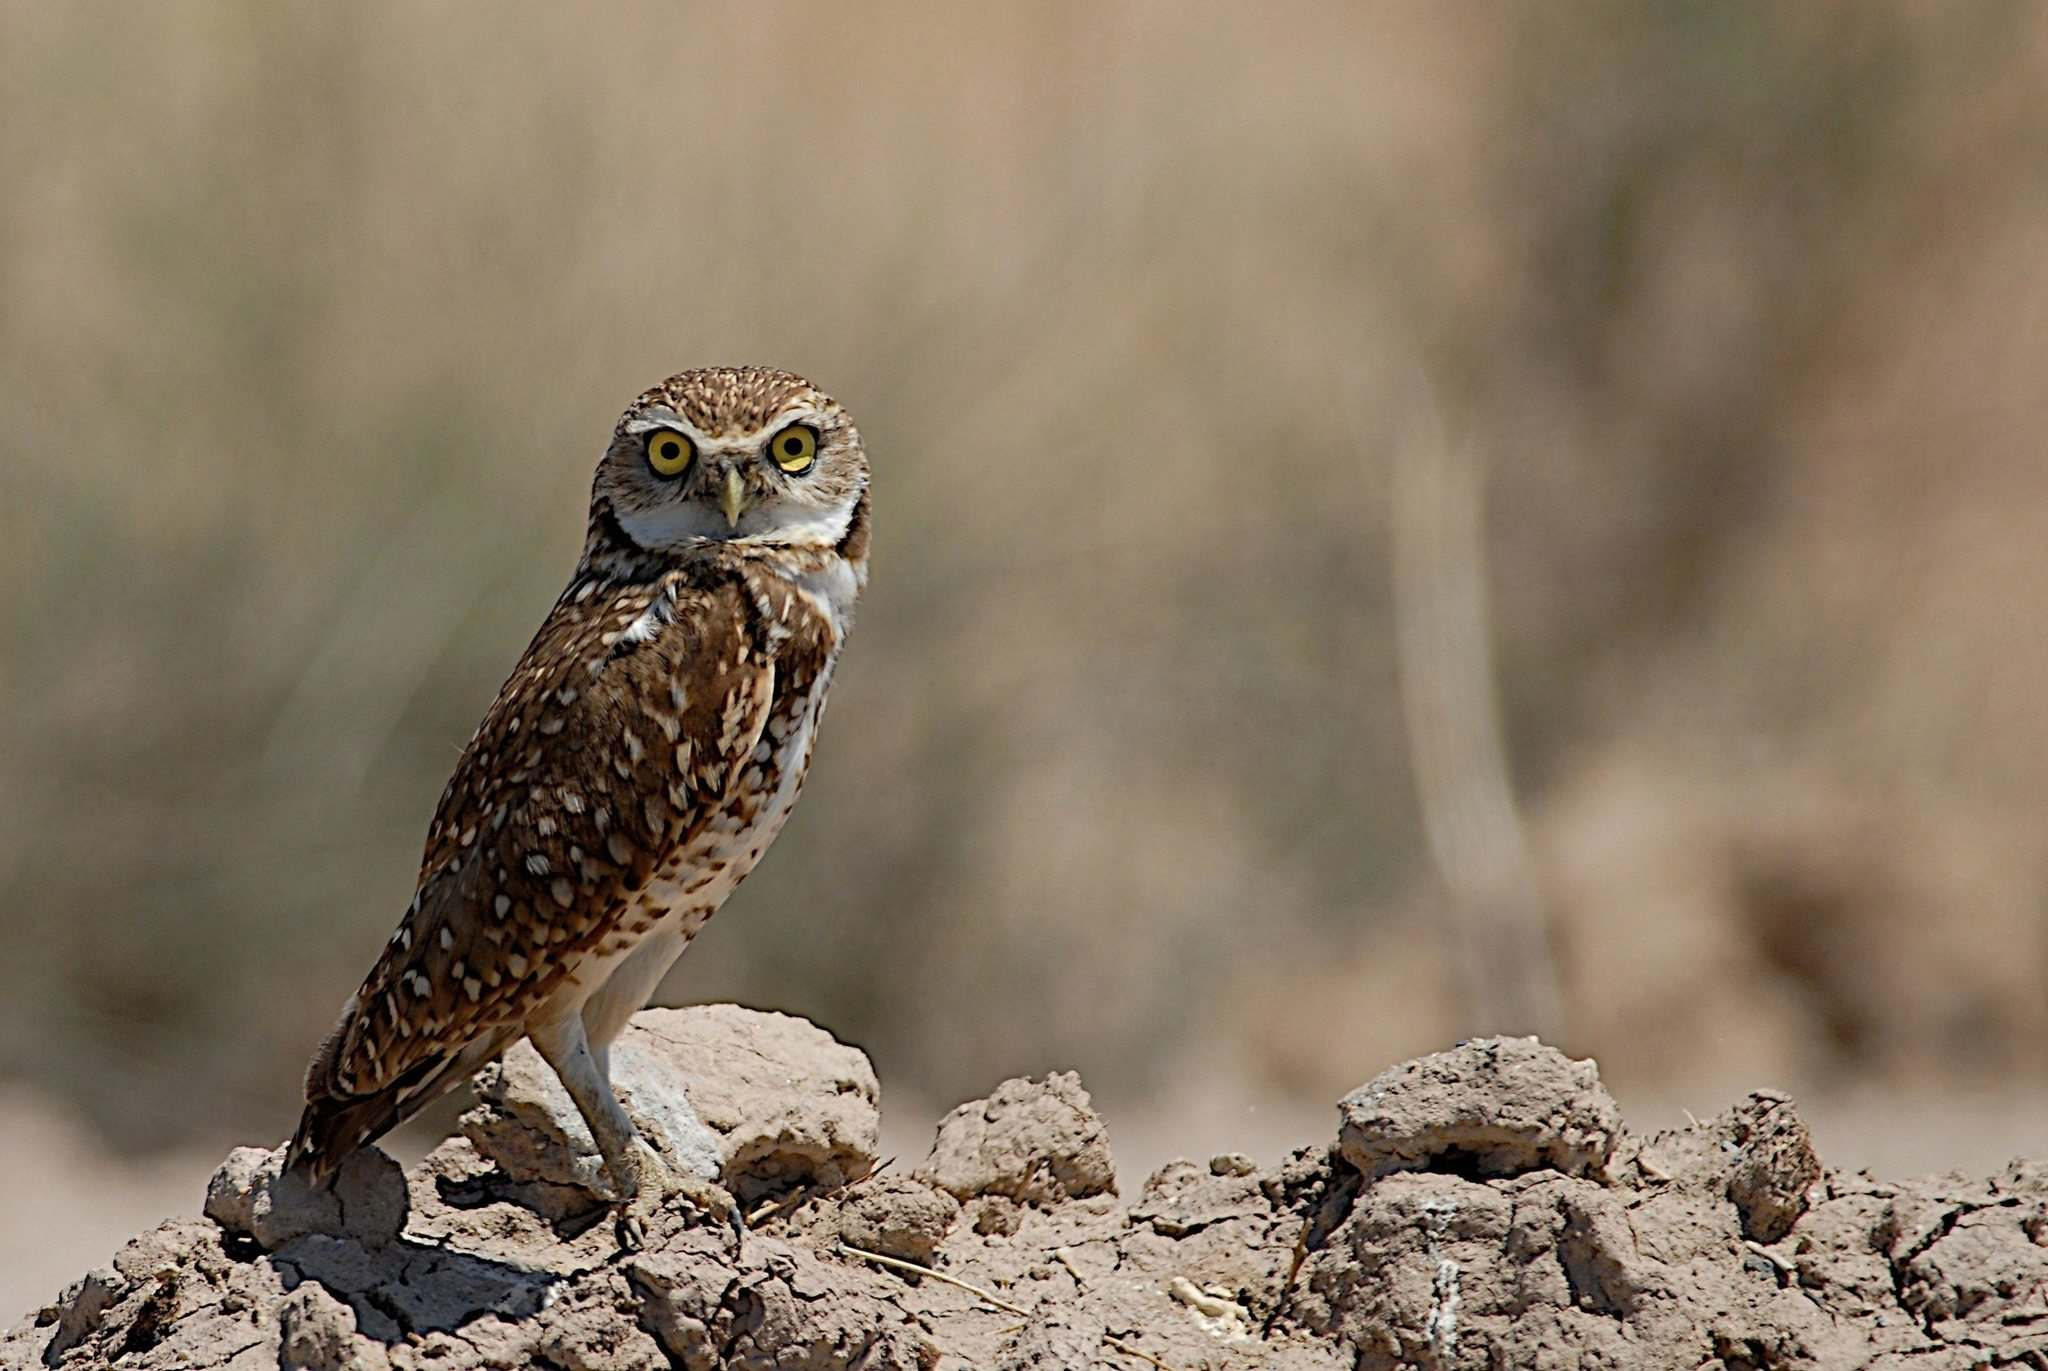 AP-Douglas Barnum / The Canadian Press</p><p>A burrowing owl in the Salton Sea, Calif. A next step in preserving one of Canada's most ecologically diverse regions has been reached between two British Columbia First Nations and the federal and provincial governments.</p>